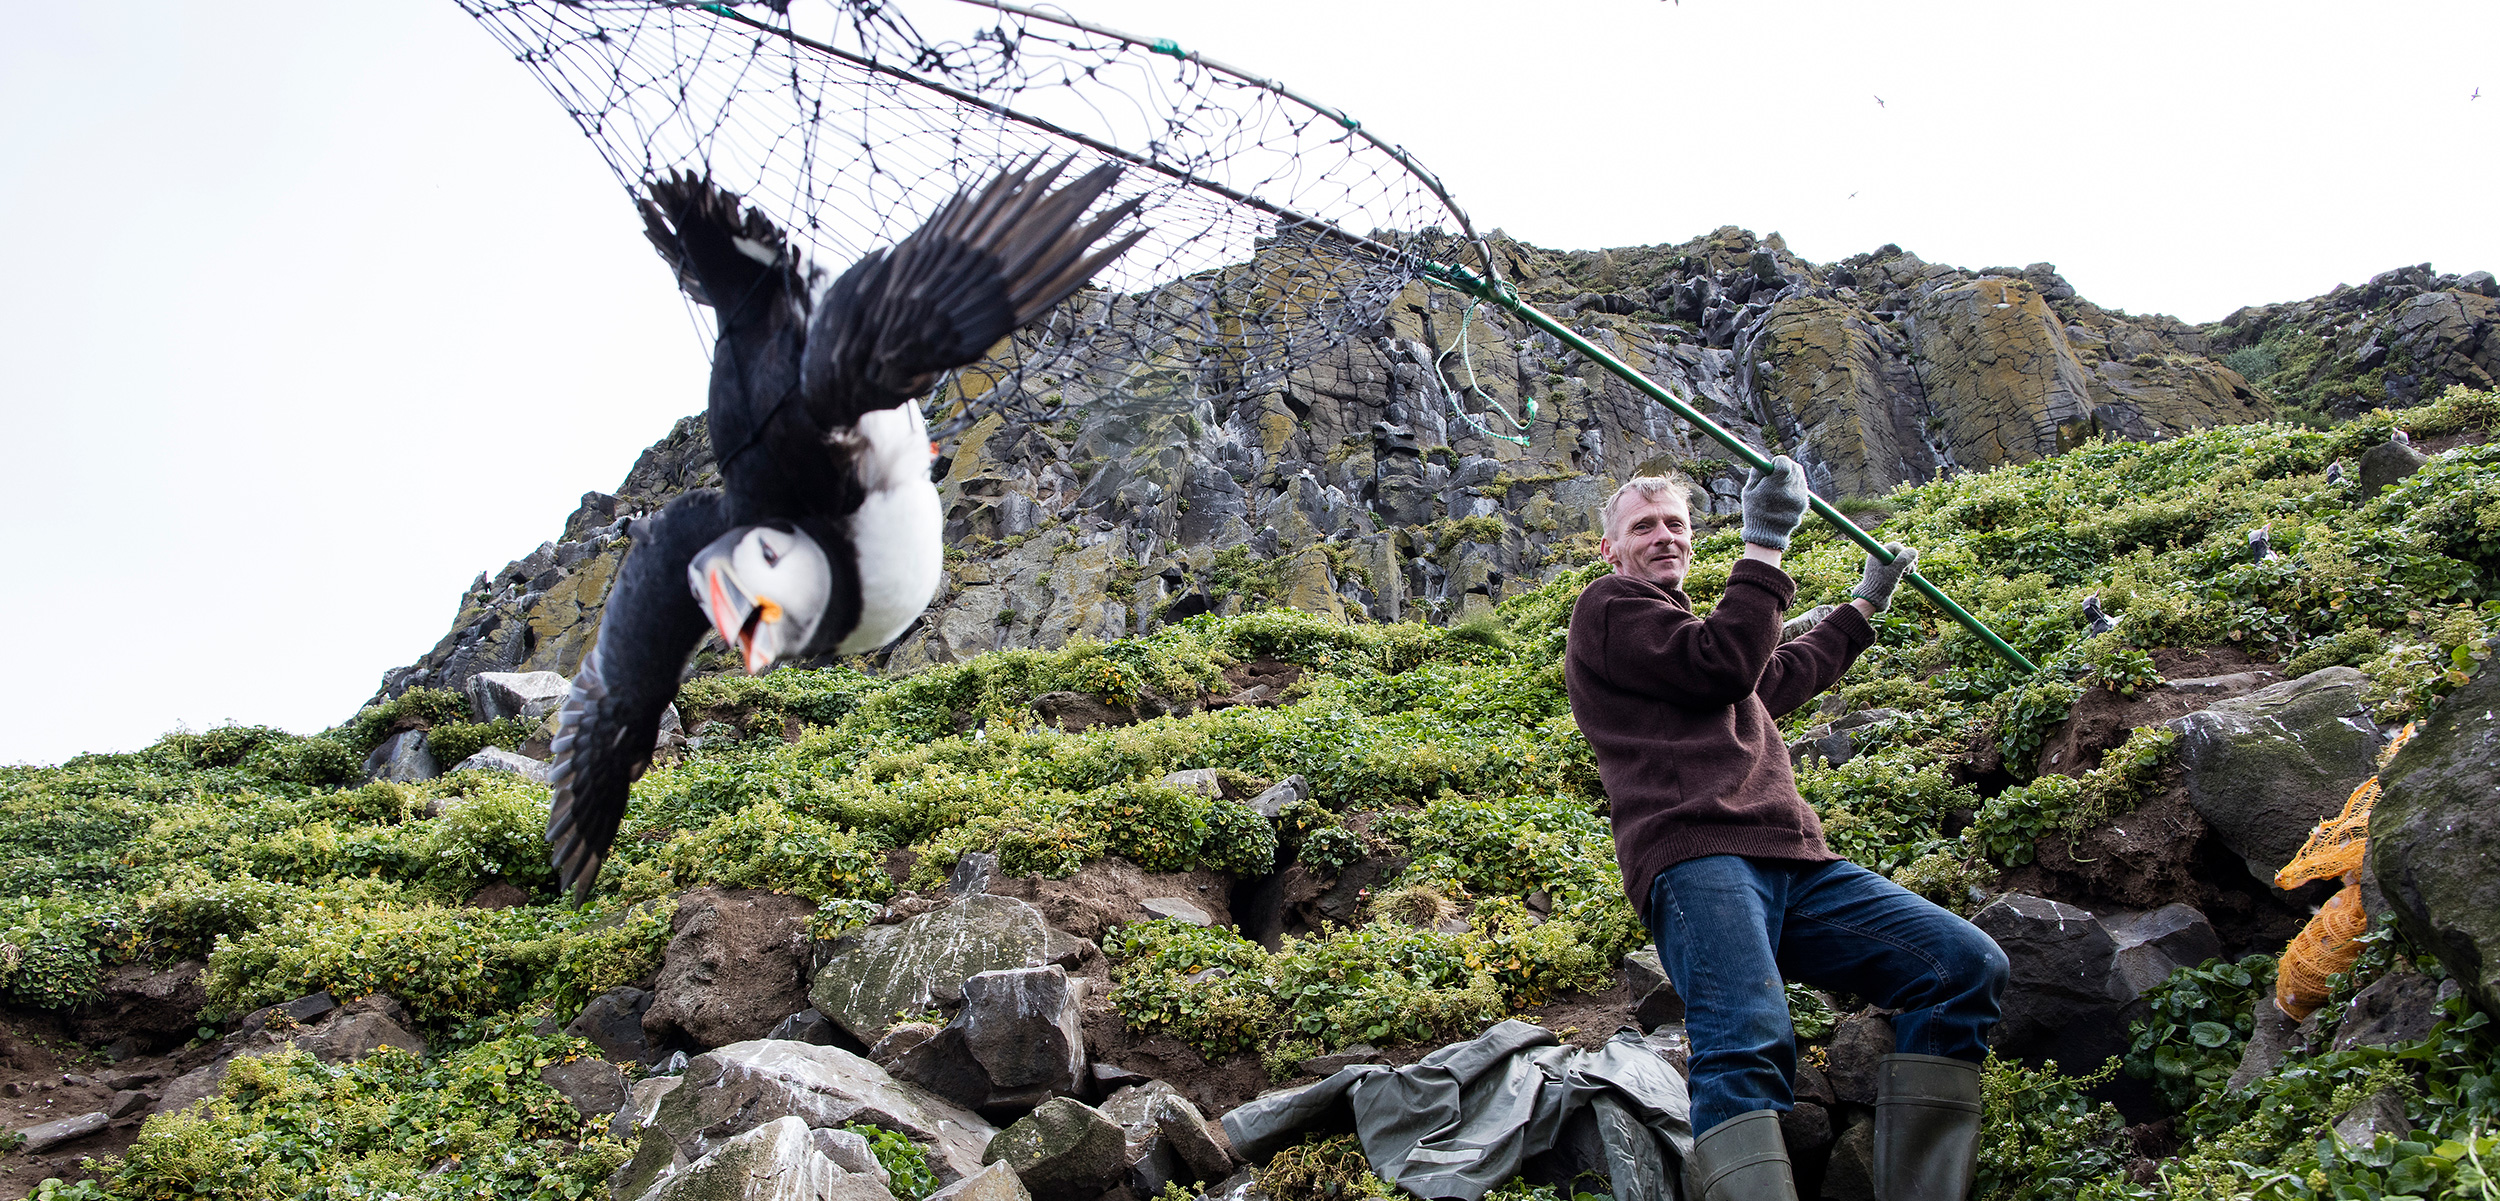 As his ancestors have done for generations, Icelander Árni Hilmarsson catches an Atlantic puffin in a net called a háfur. Photo by Carsten Egevang/atlanticseabirds.info